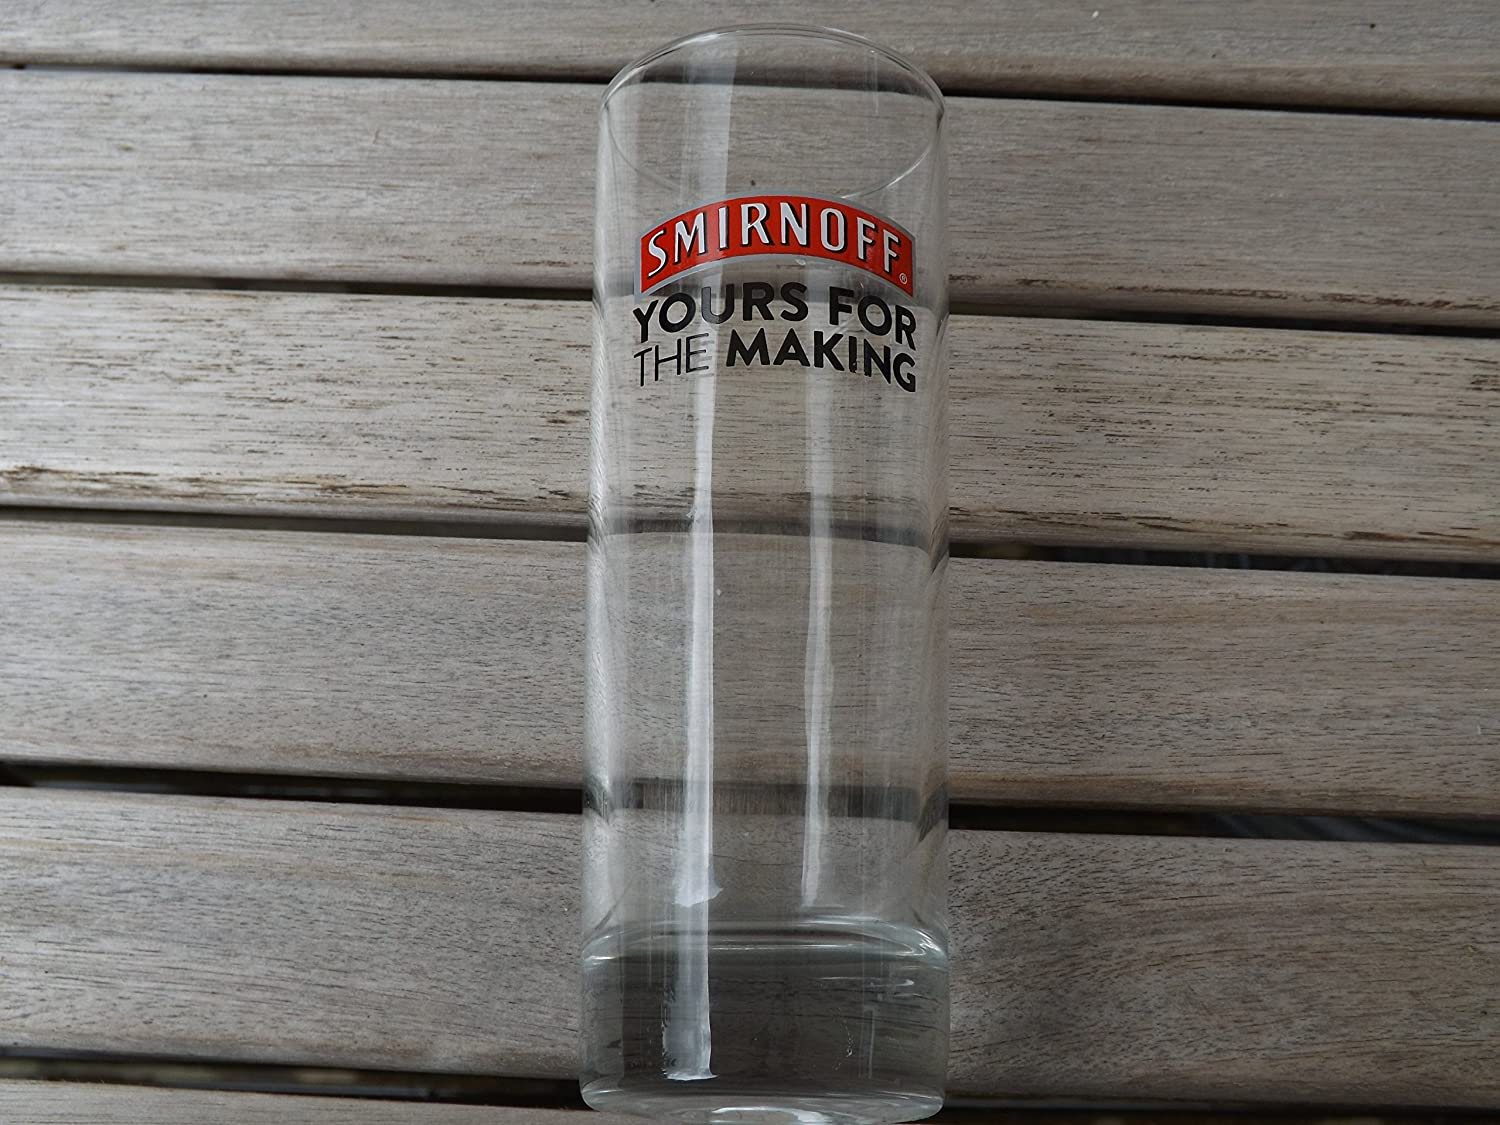 SMIRNOFF TALL GLASS YOURS FOR THE MAKING